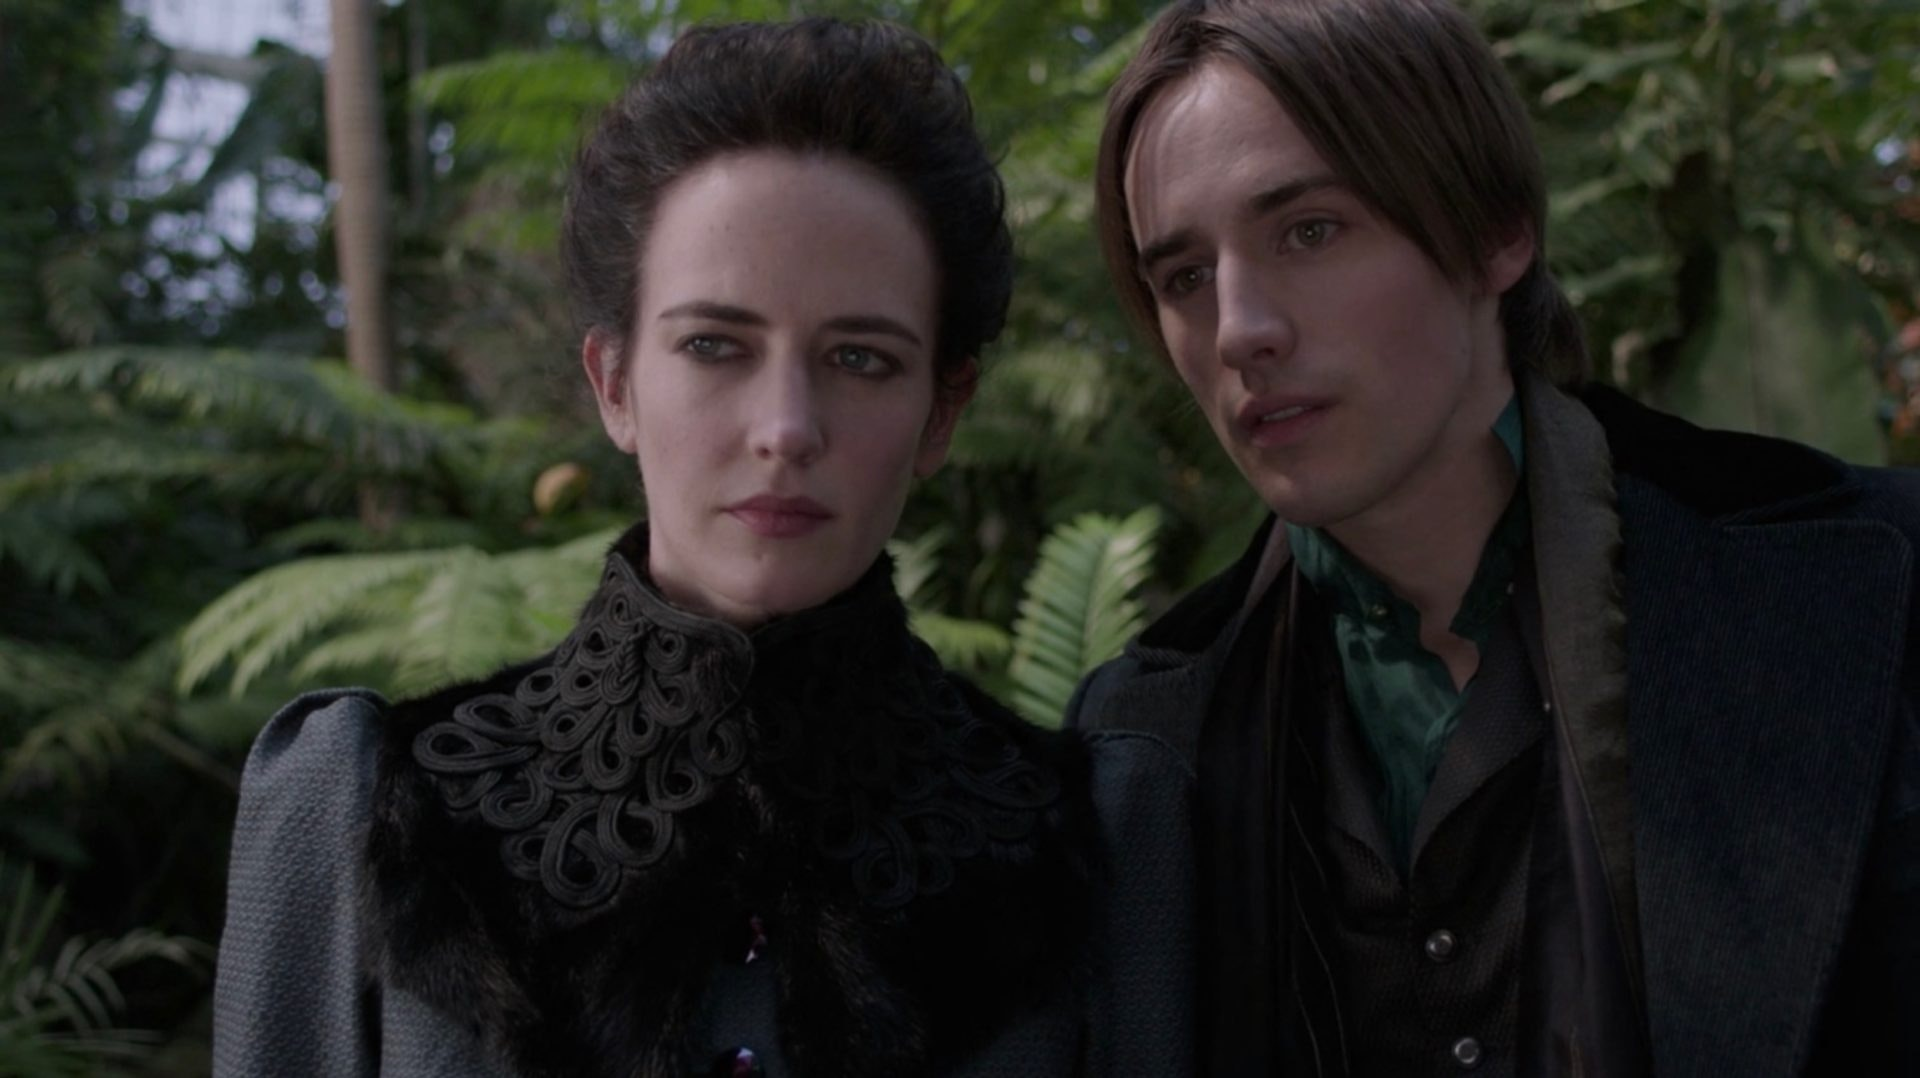 best vampire tv shows netflix penny dreadful